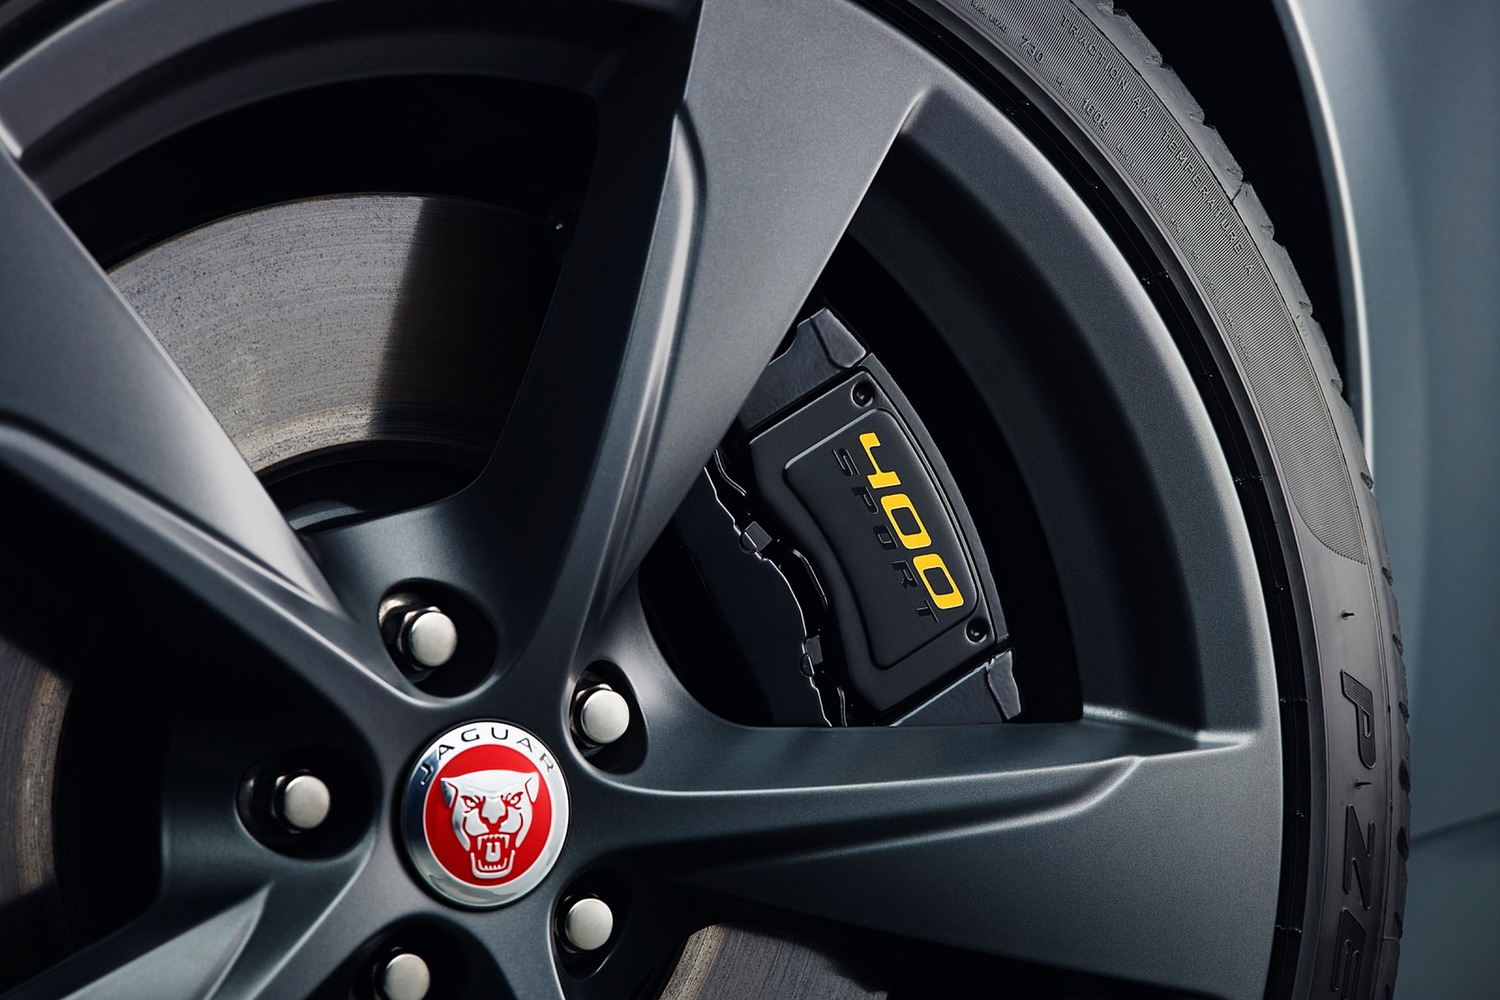 2018 Jaguar F-TYPE 400 Sport Coupe Wheel